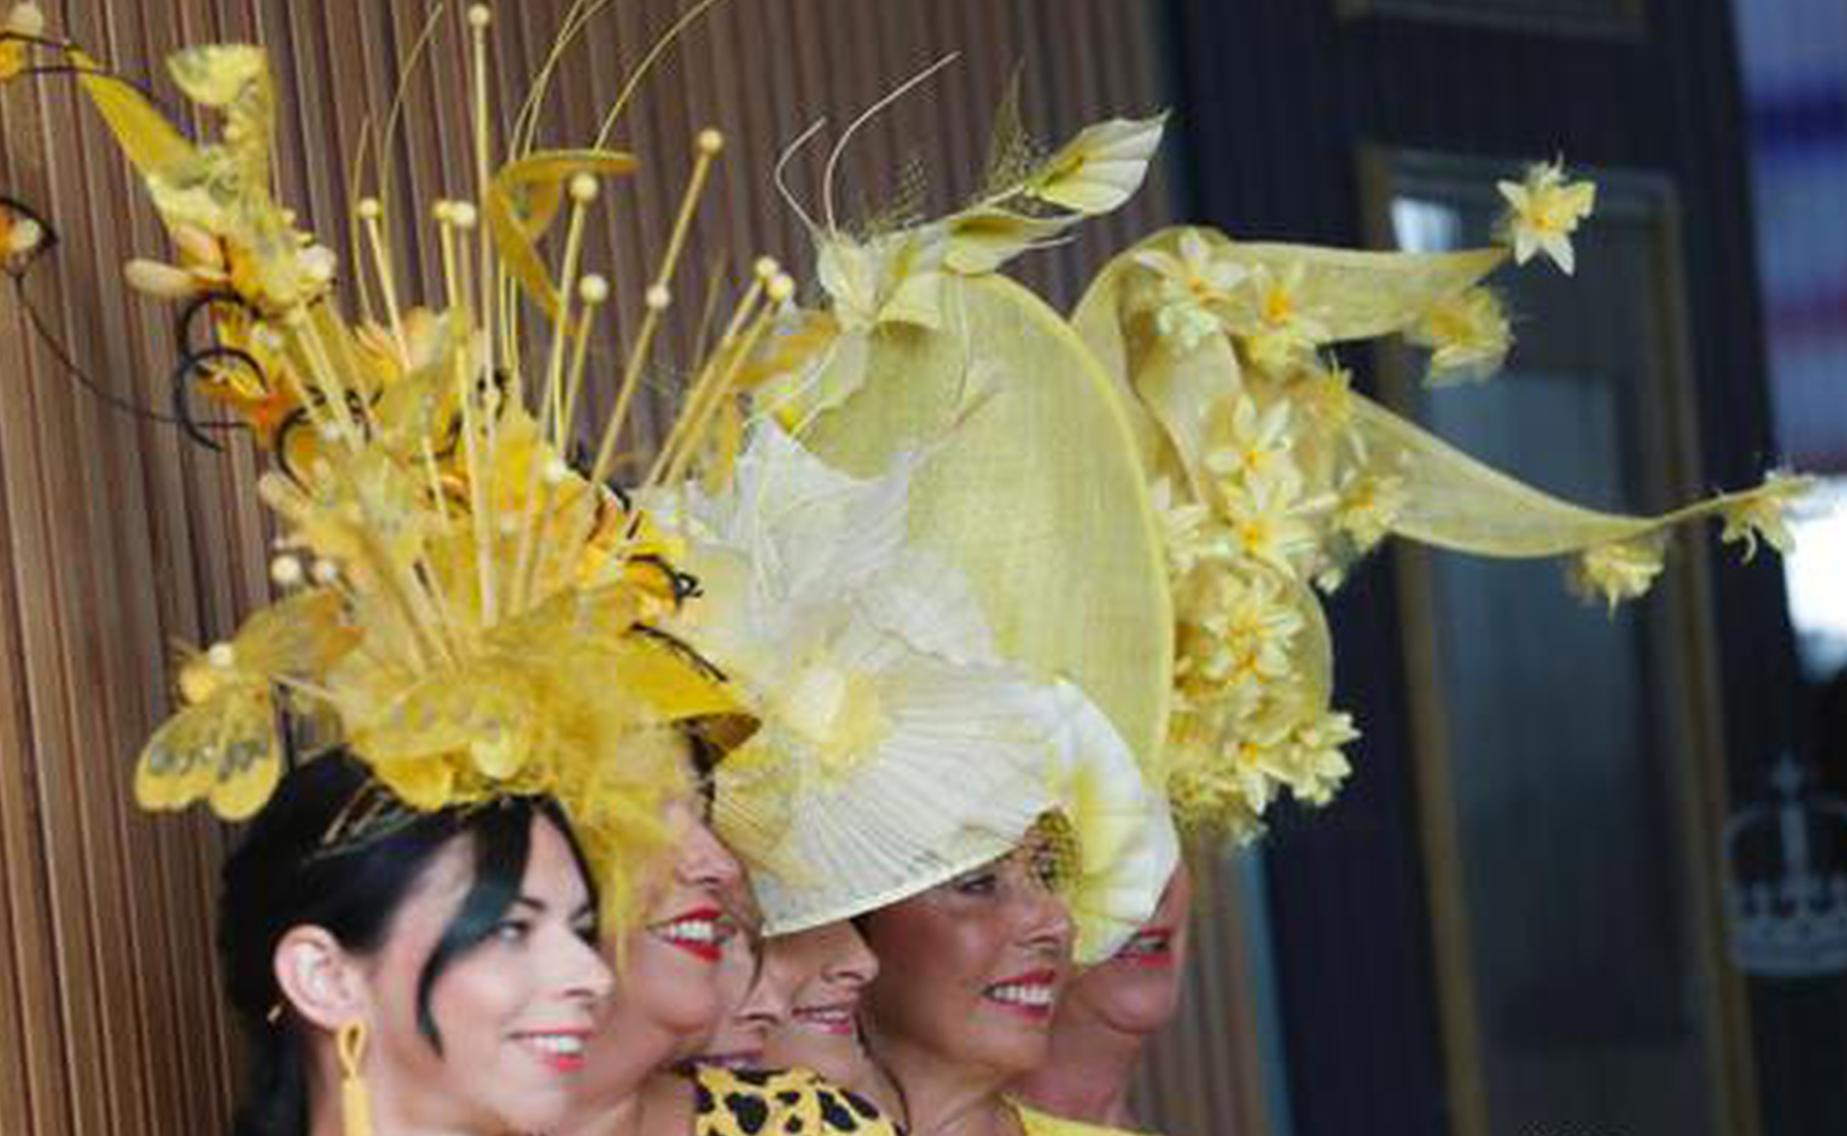 Racegoers adorned their statement hats with feathers and flowers in one of Britain's most well-known racecourses. (Photo/Agencies)